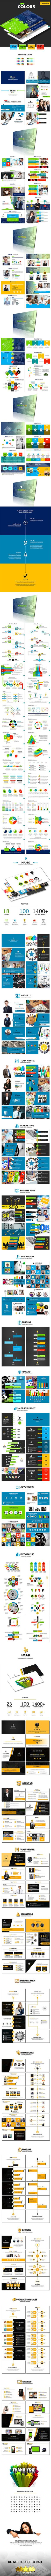 3 in 1 - Powepoint Business Presentation Template #design #slides Download: http://graphicriver.net/item/3-in-1-powepoint-business-presentation-vol1/13022343?ref=ksioks